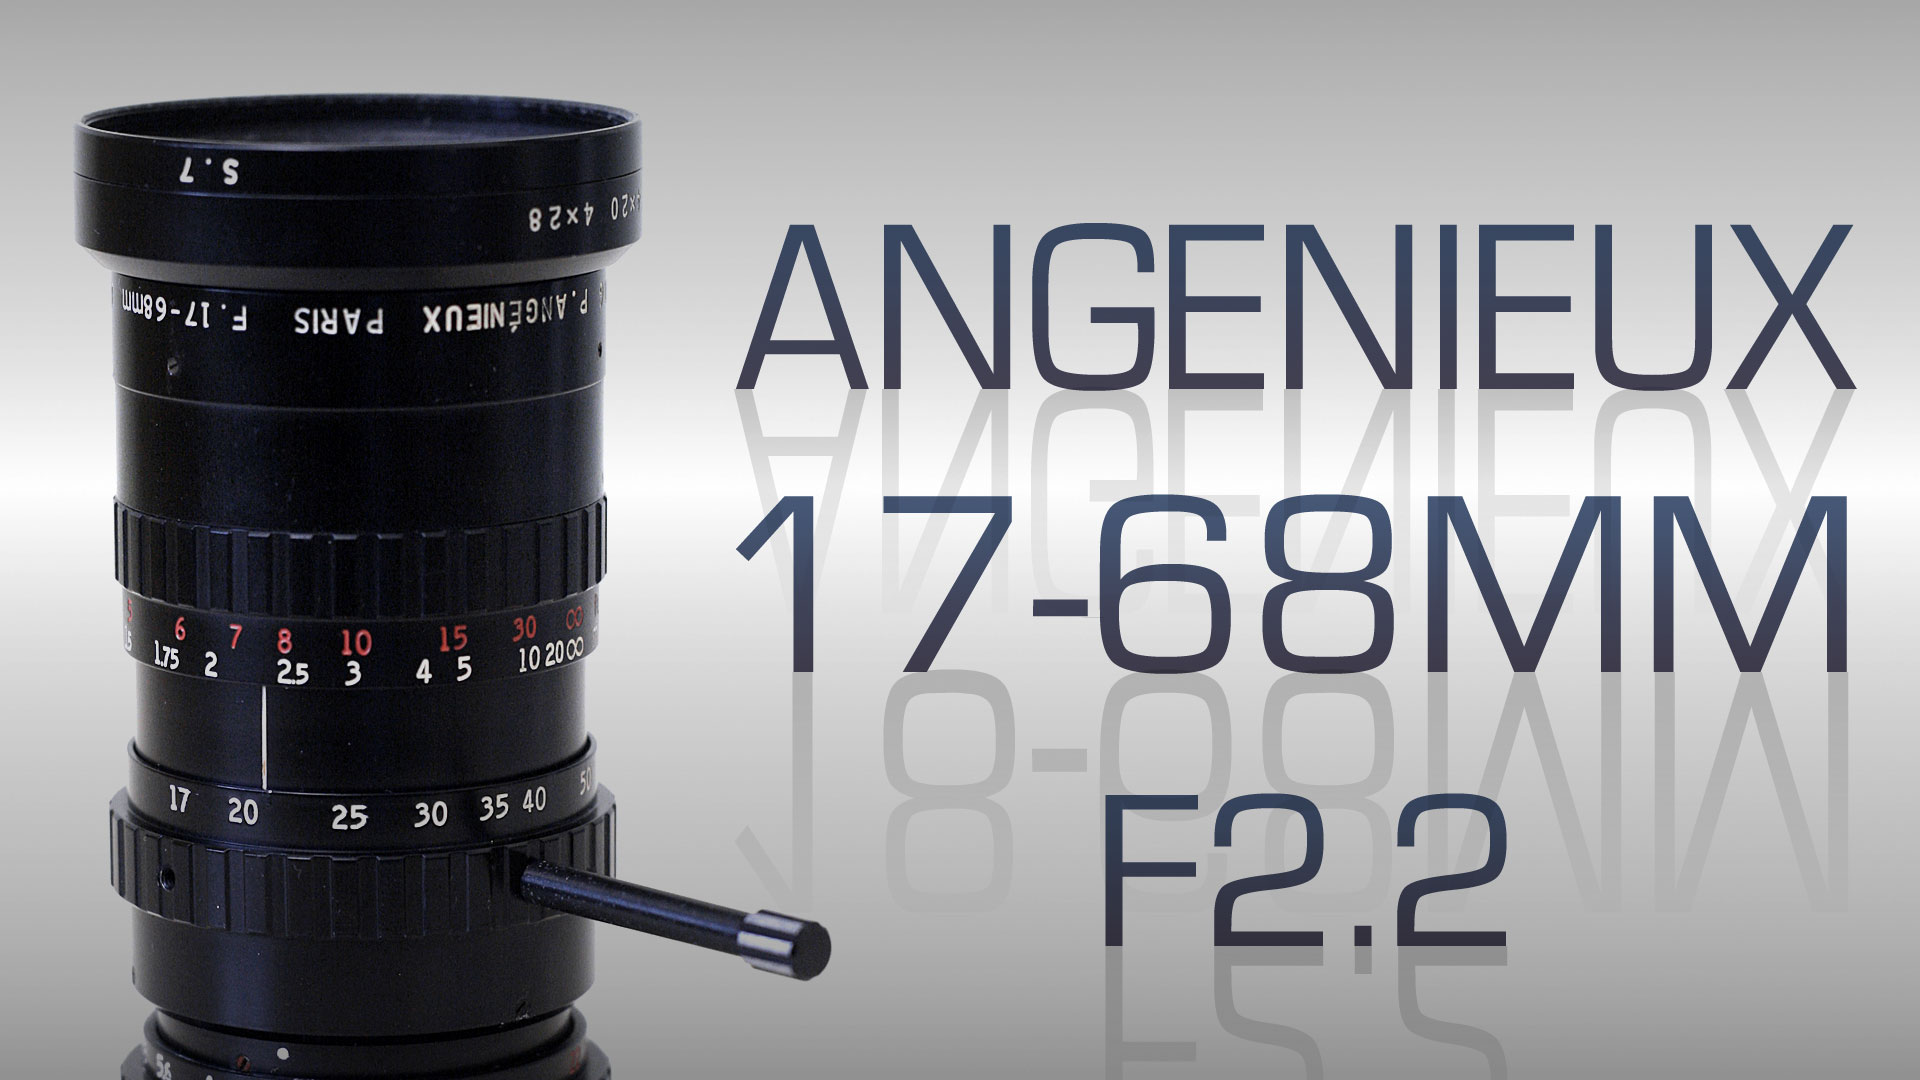 Angenieux 17-68mm F2.2 for BMPCC & D16 | REVIEW